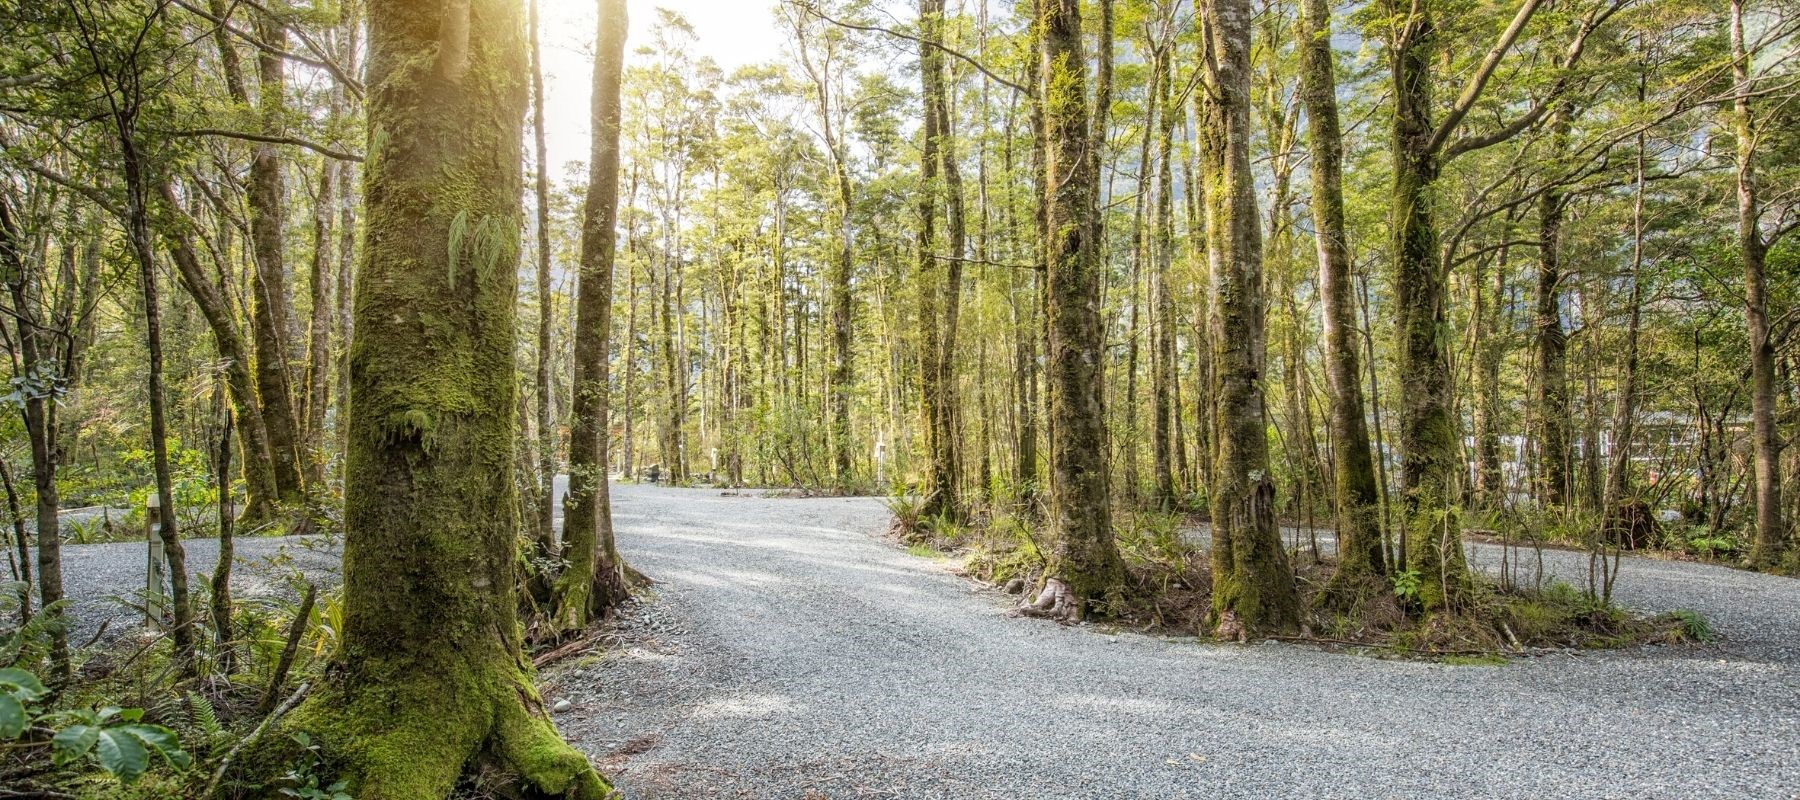 The entry to the Rainforest Campervan Park at Milford Sound Lodge.